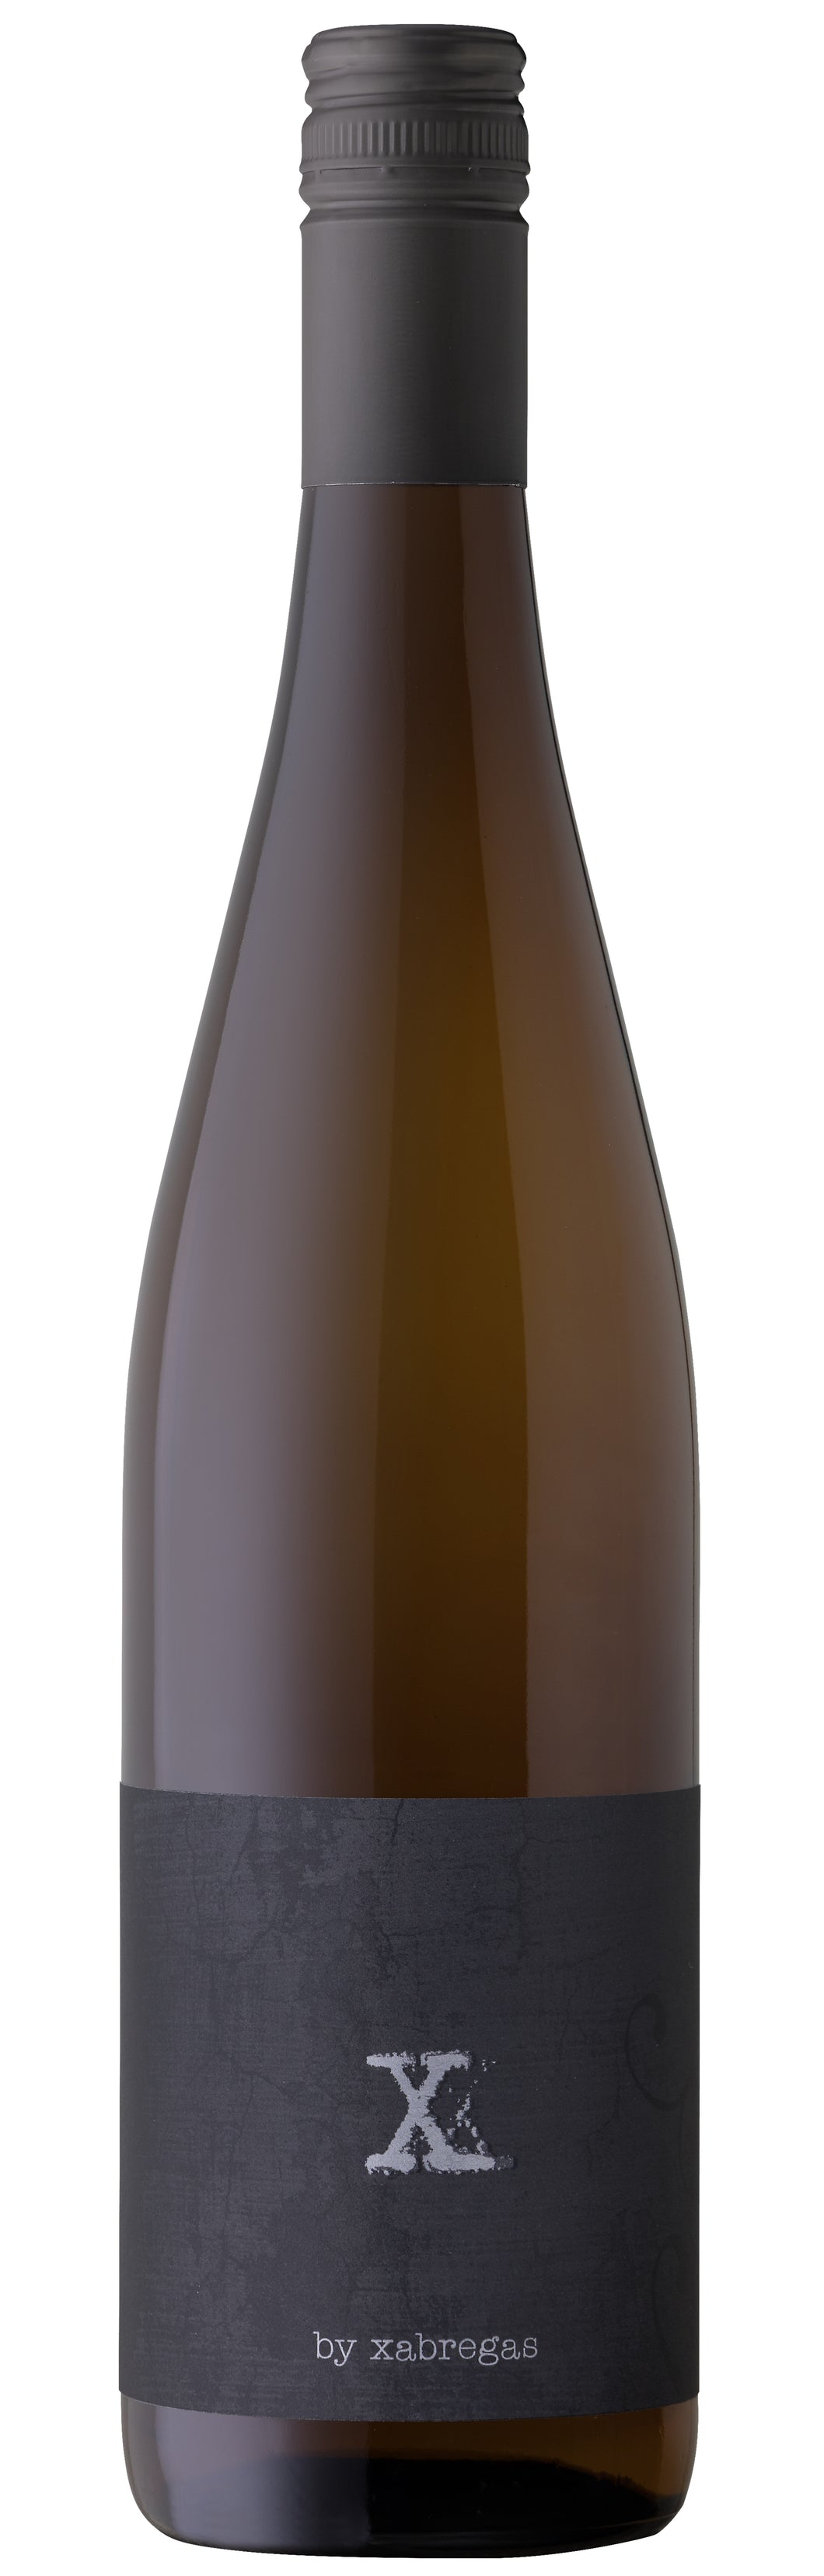 2018 X by Xabregas Figtree Riesling - Xabregas Estate